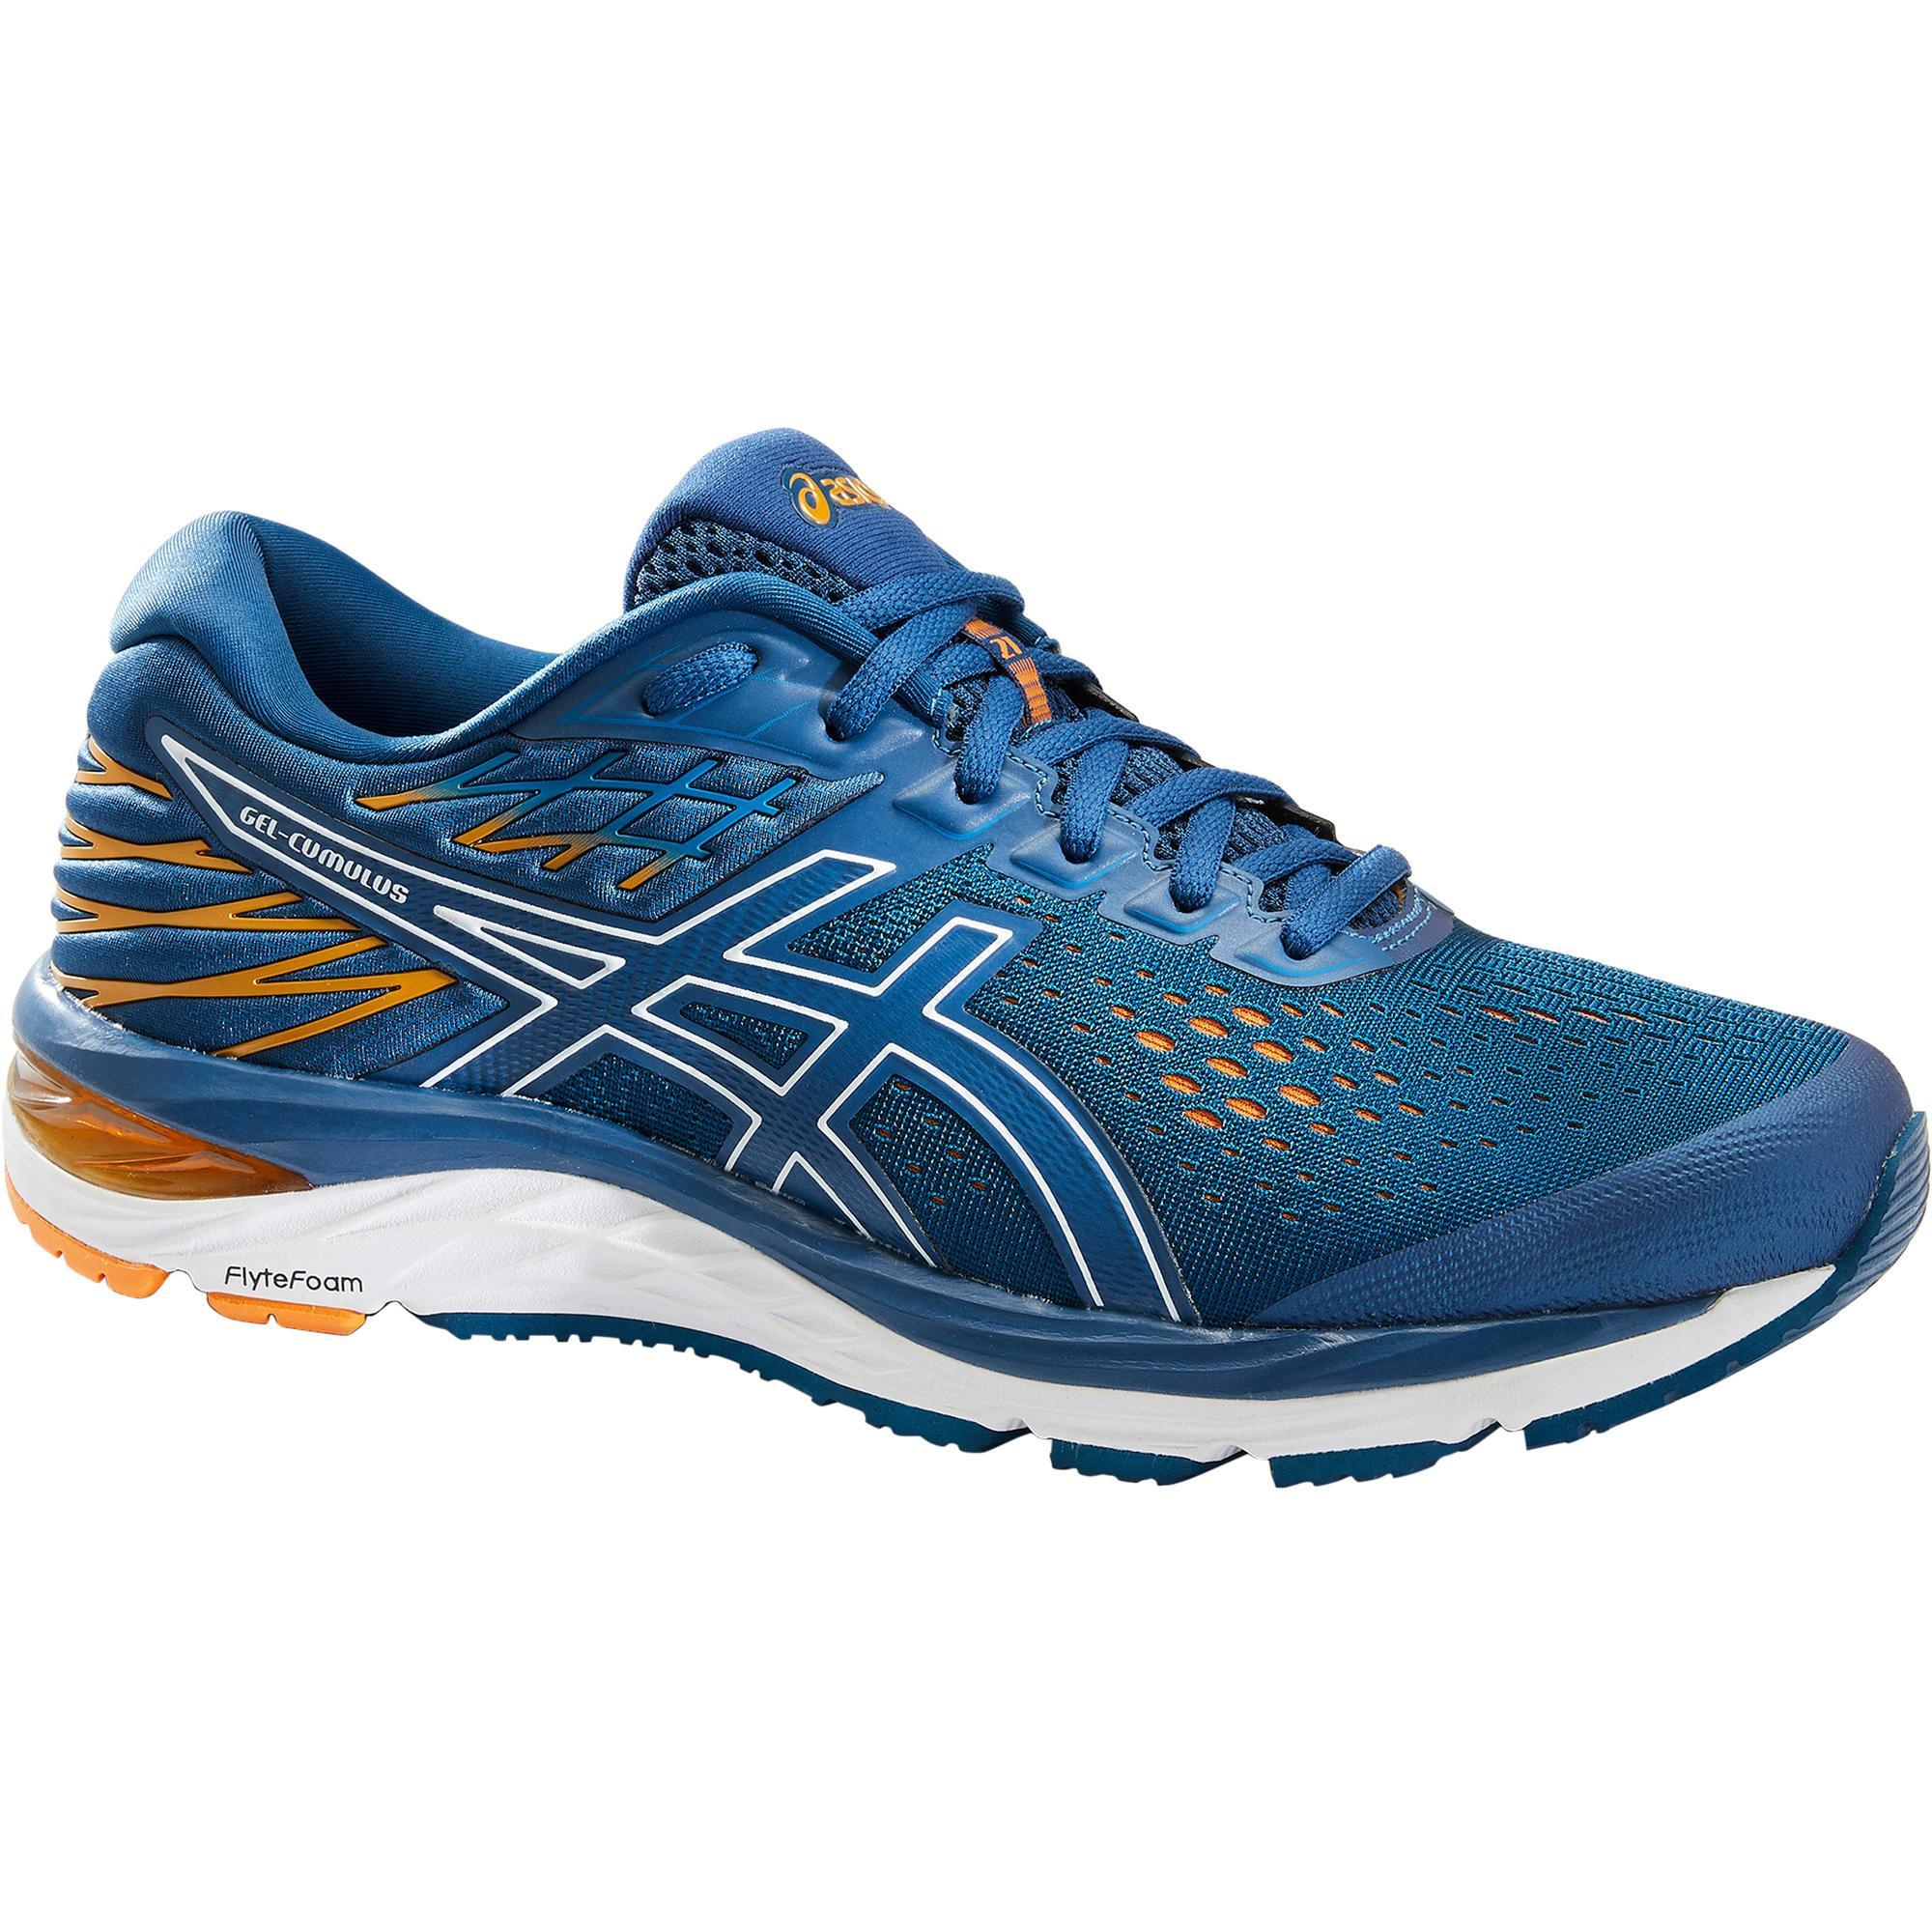 Asics Homme Gel-Cumulus 21 Chaussures De Course Baskets-Bleu Orange Sport Respirant